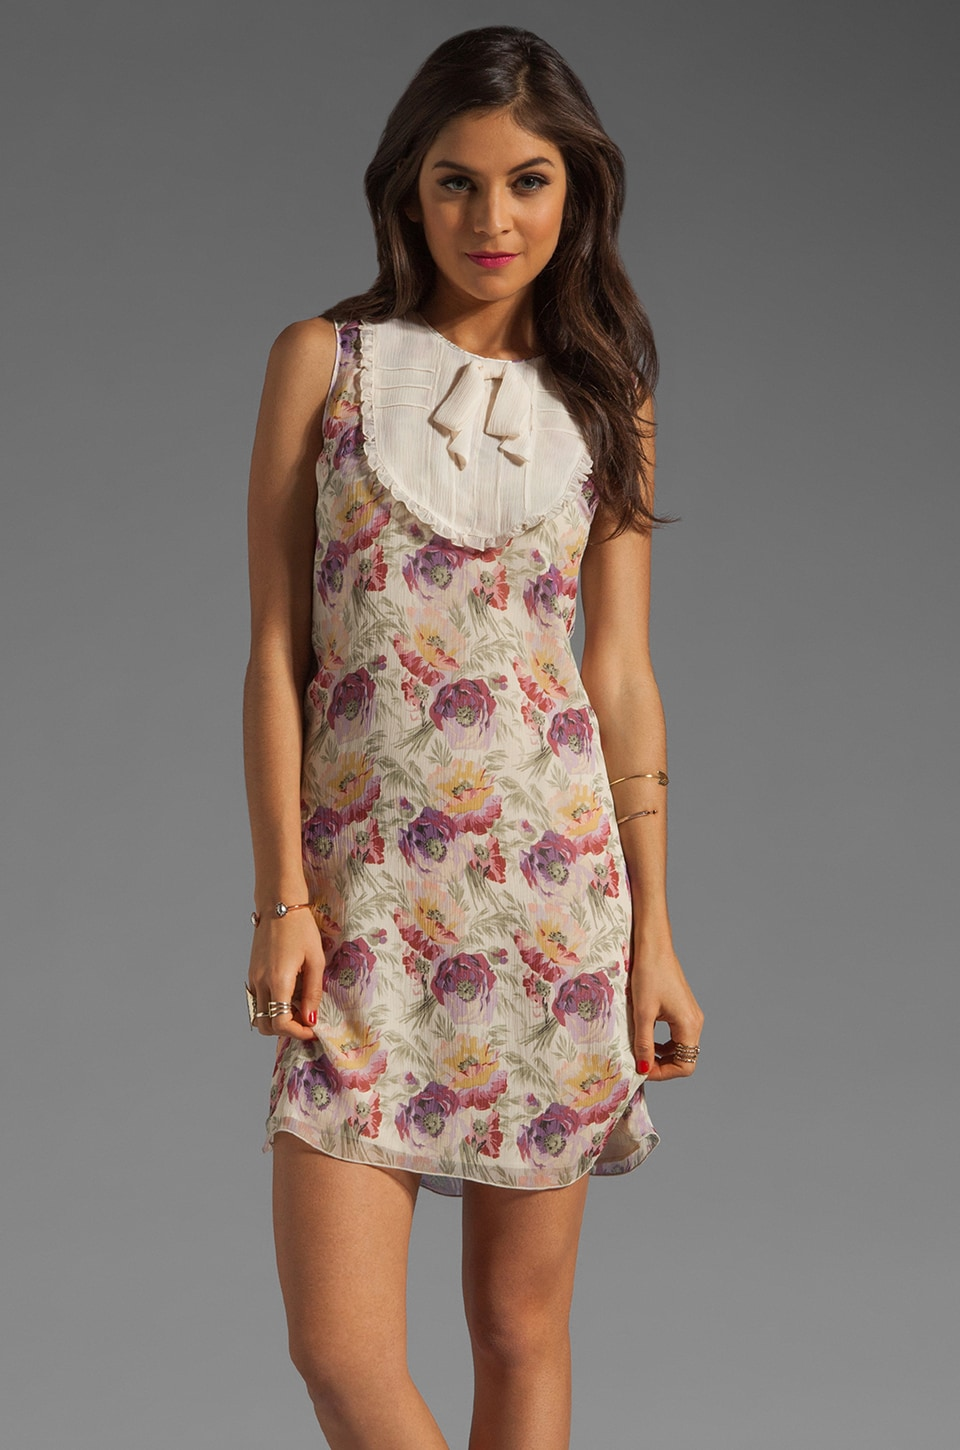 Anna Sui Poppy Print Dress in Lavender Multi